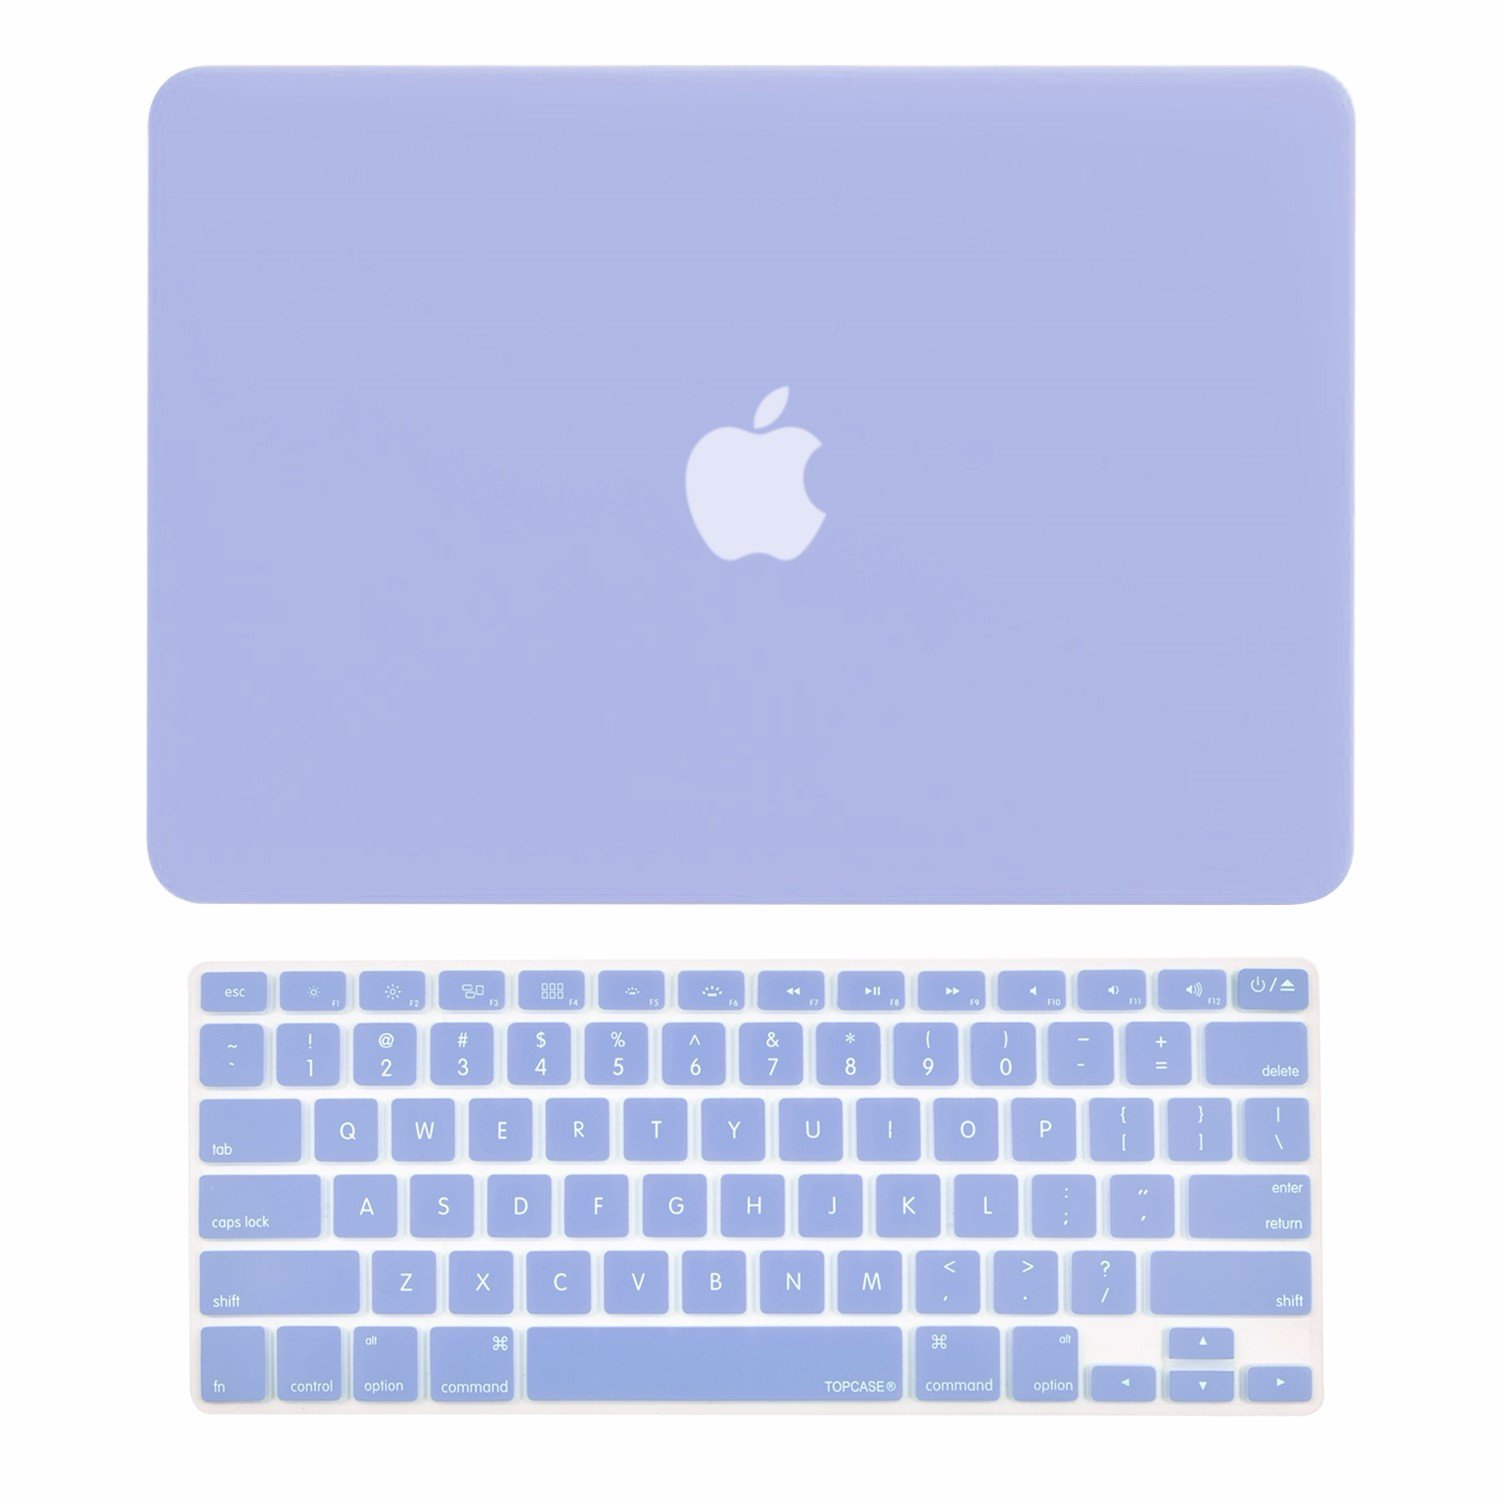 TOP CASE - 2 in 1 Bundle Deal Rubberized Hard Case Cover and Keyboard Cover Compatible with Apple MacBook Air 13'' (A1369 and A1466) with TOP CASE Mouse Pad - Serenity Blue